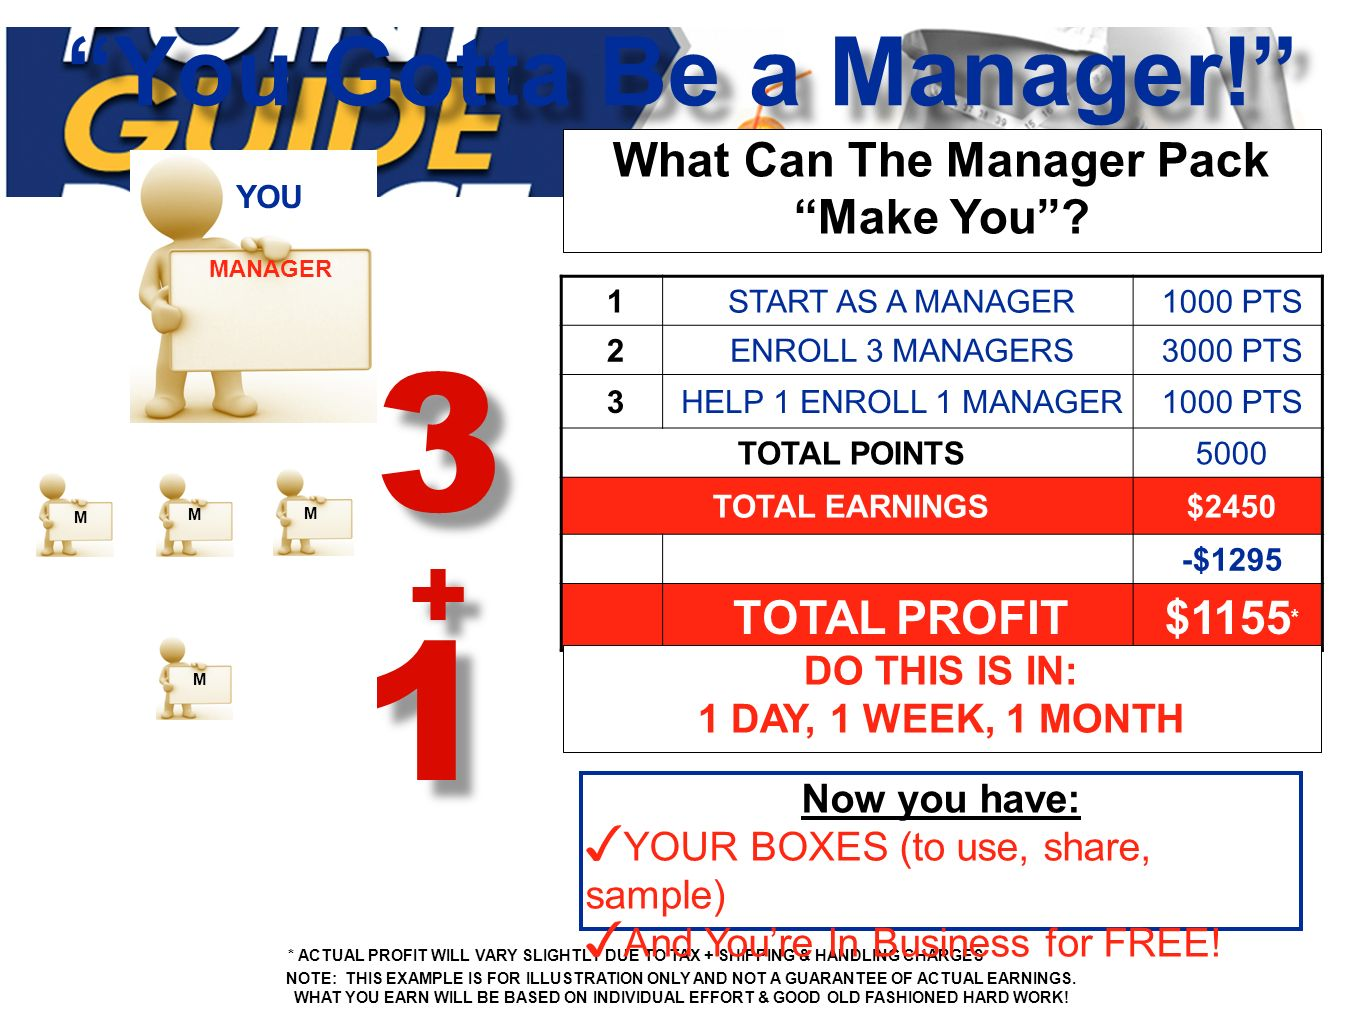 You Gotta Be a Manager. What Can The Manager Pack Make You.